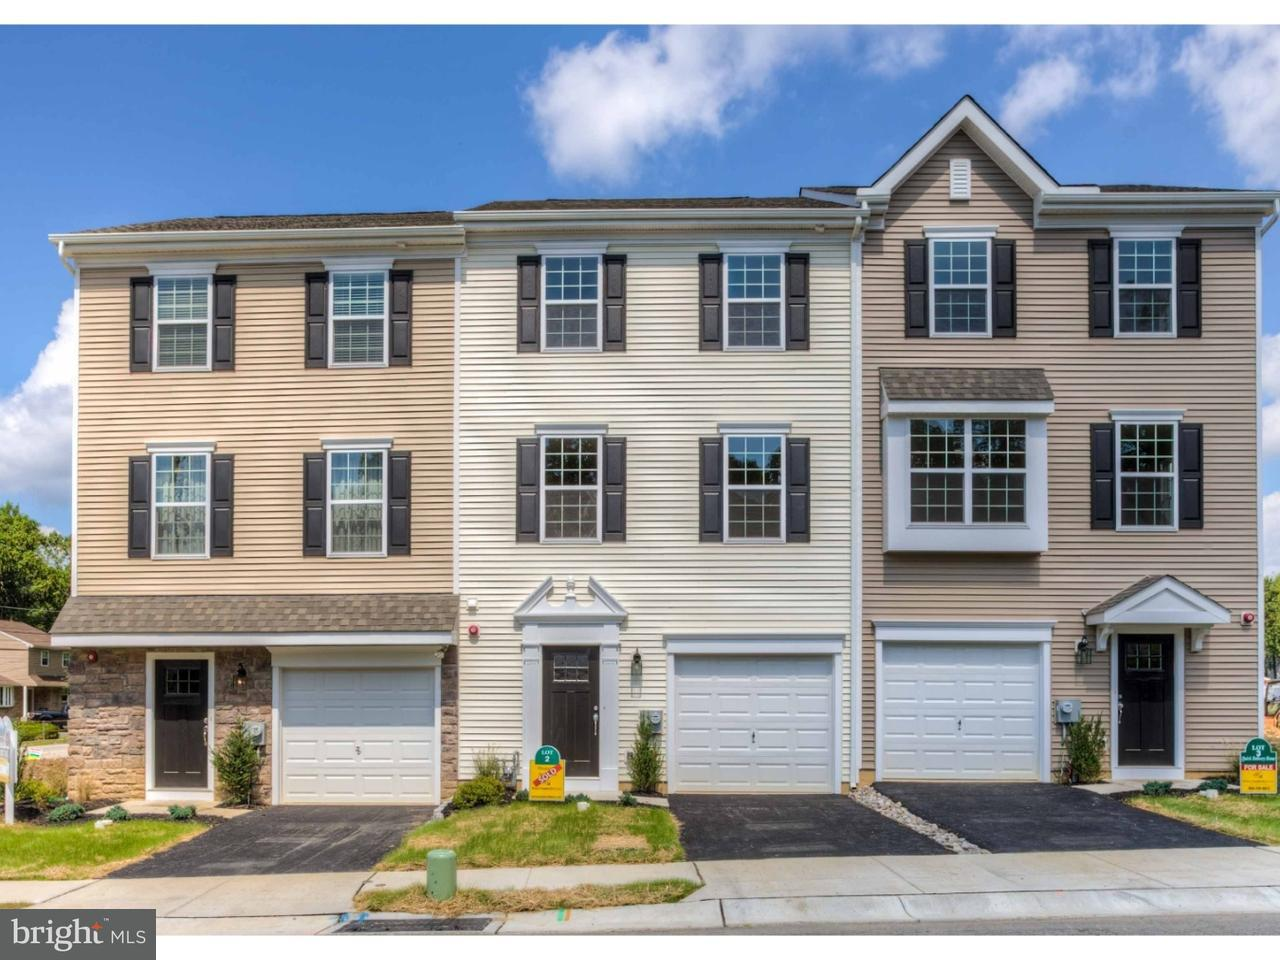 Townhouse for Sale at Lot #8 FARADAY Court Morton, Pennsylvania 19070 United States